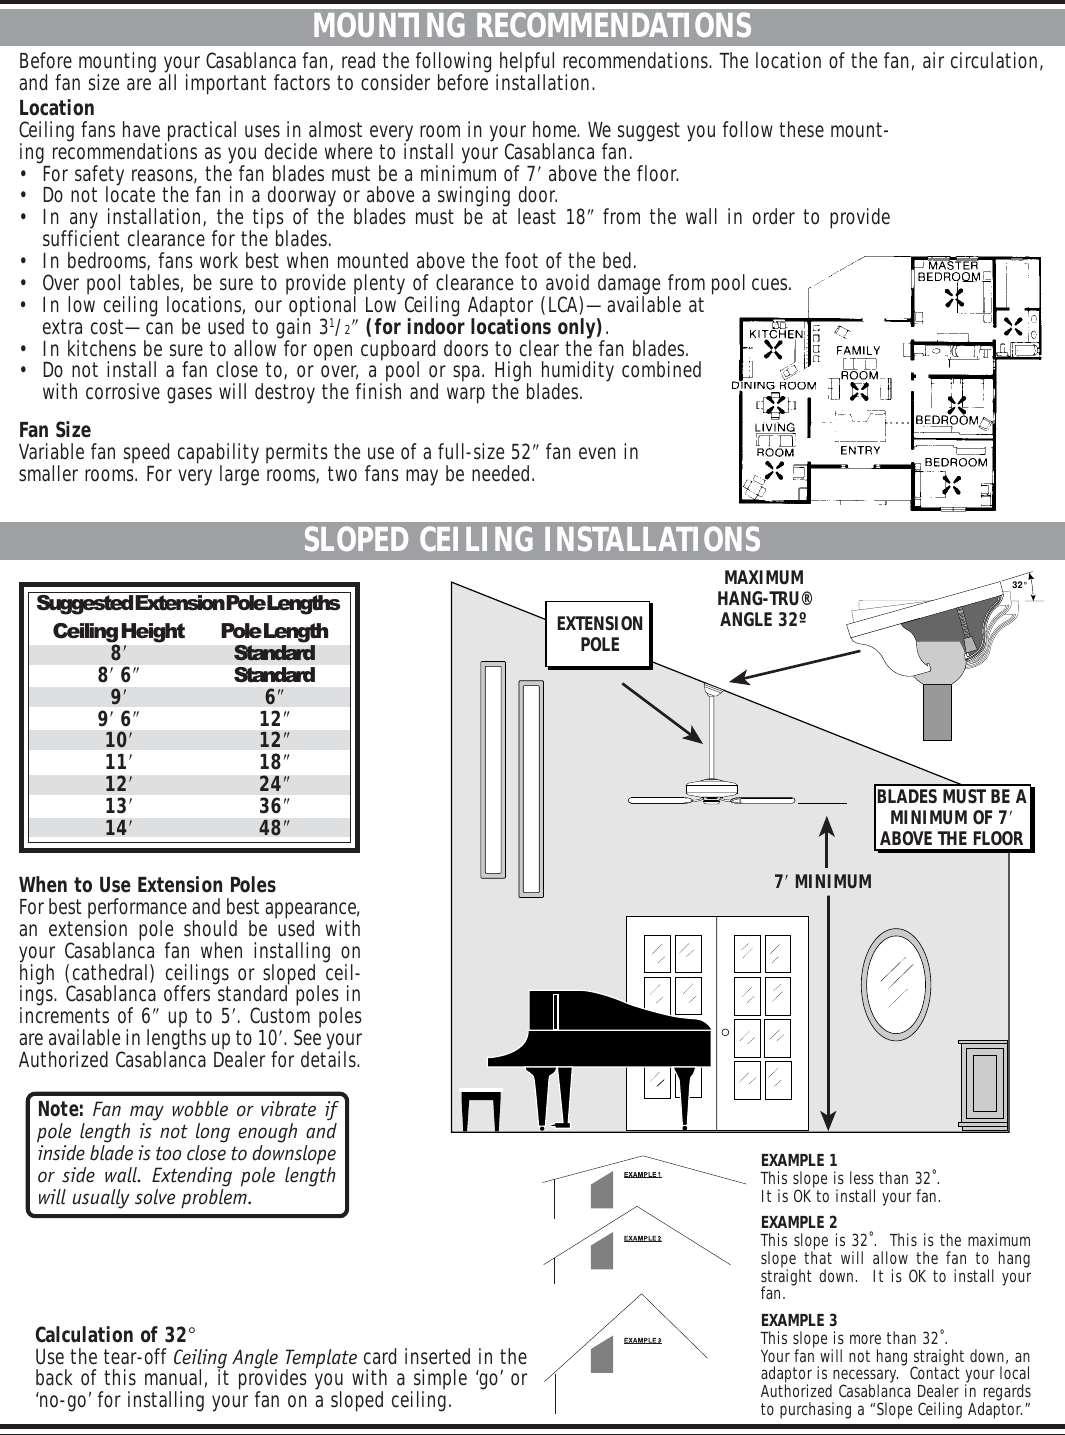 Casablanca Fan Company Wailea Ceiling 41uxxd Users Manual Wiring Diagram Page 2 Of 10